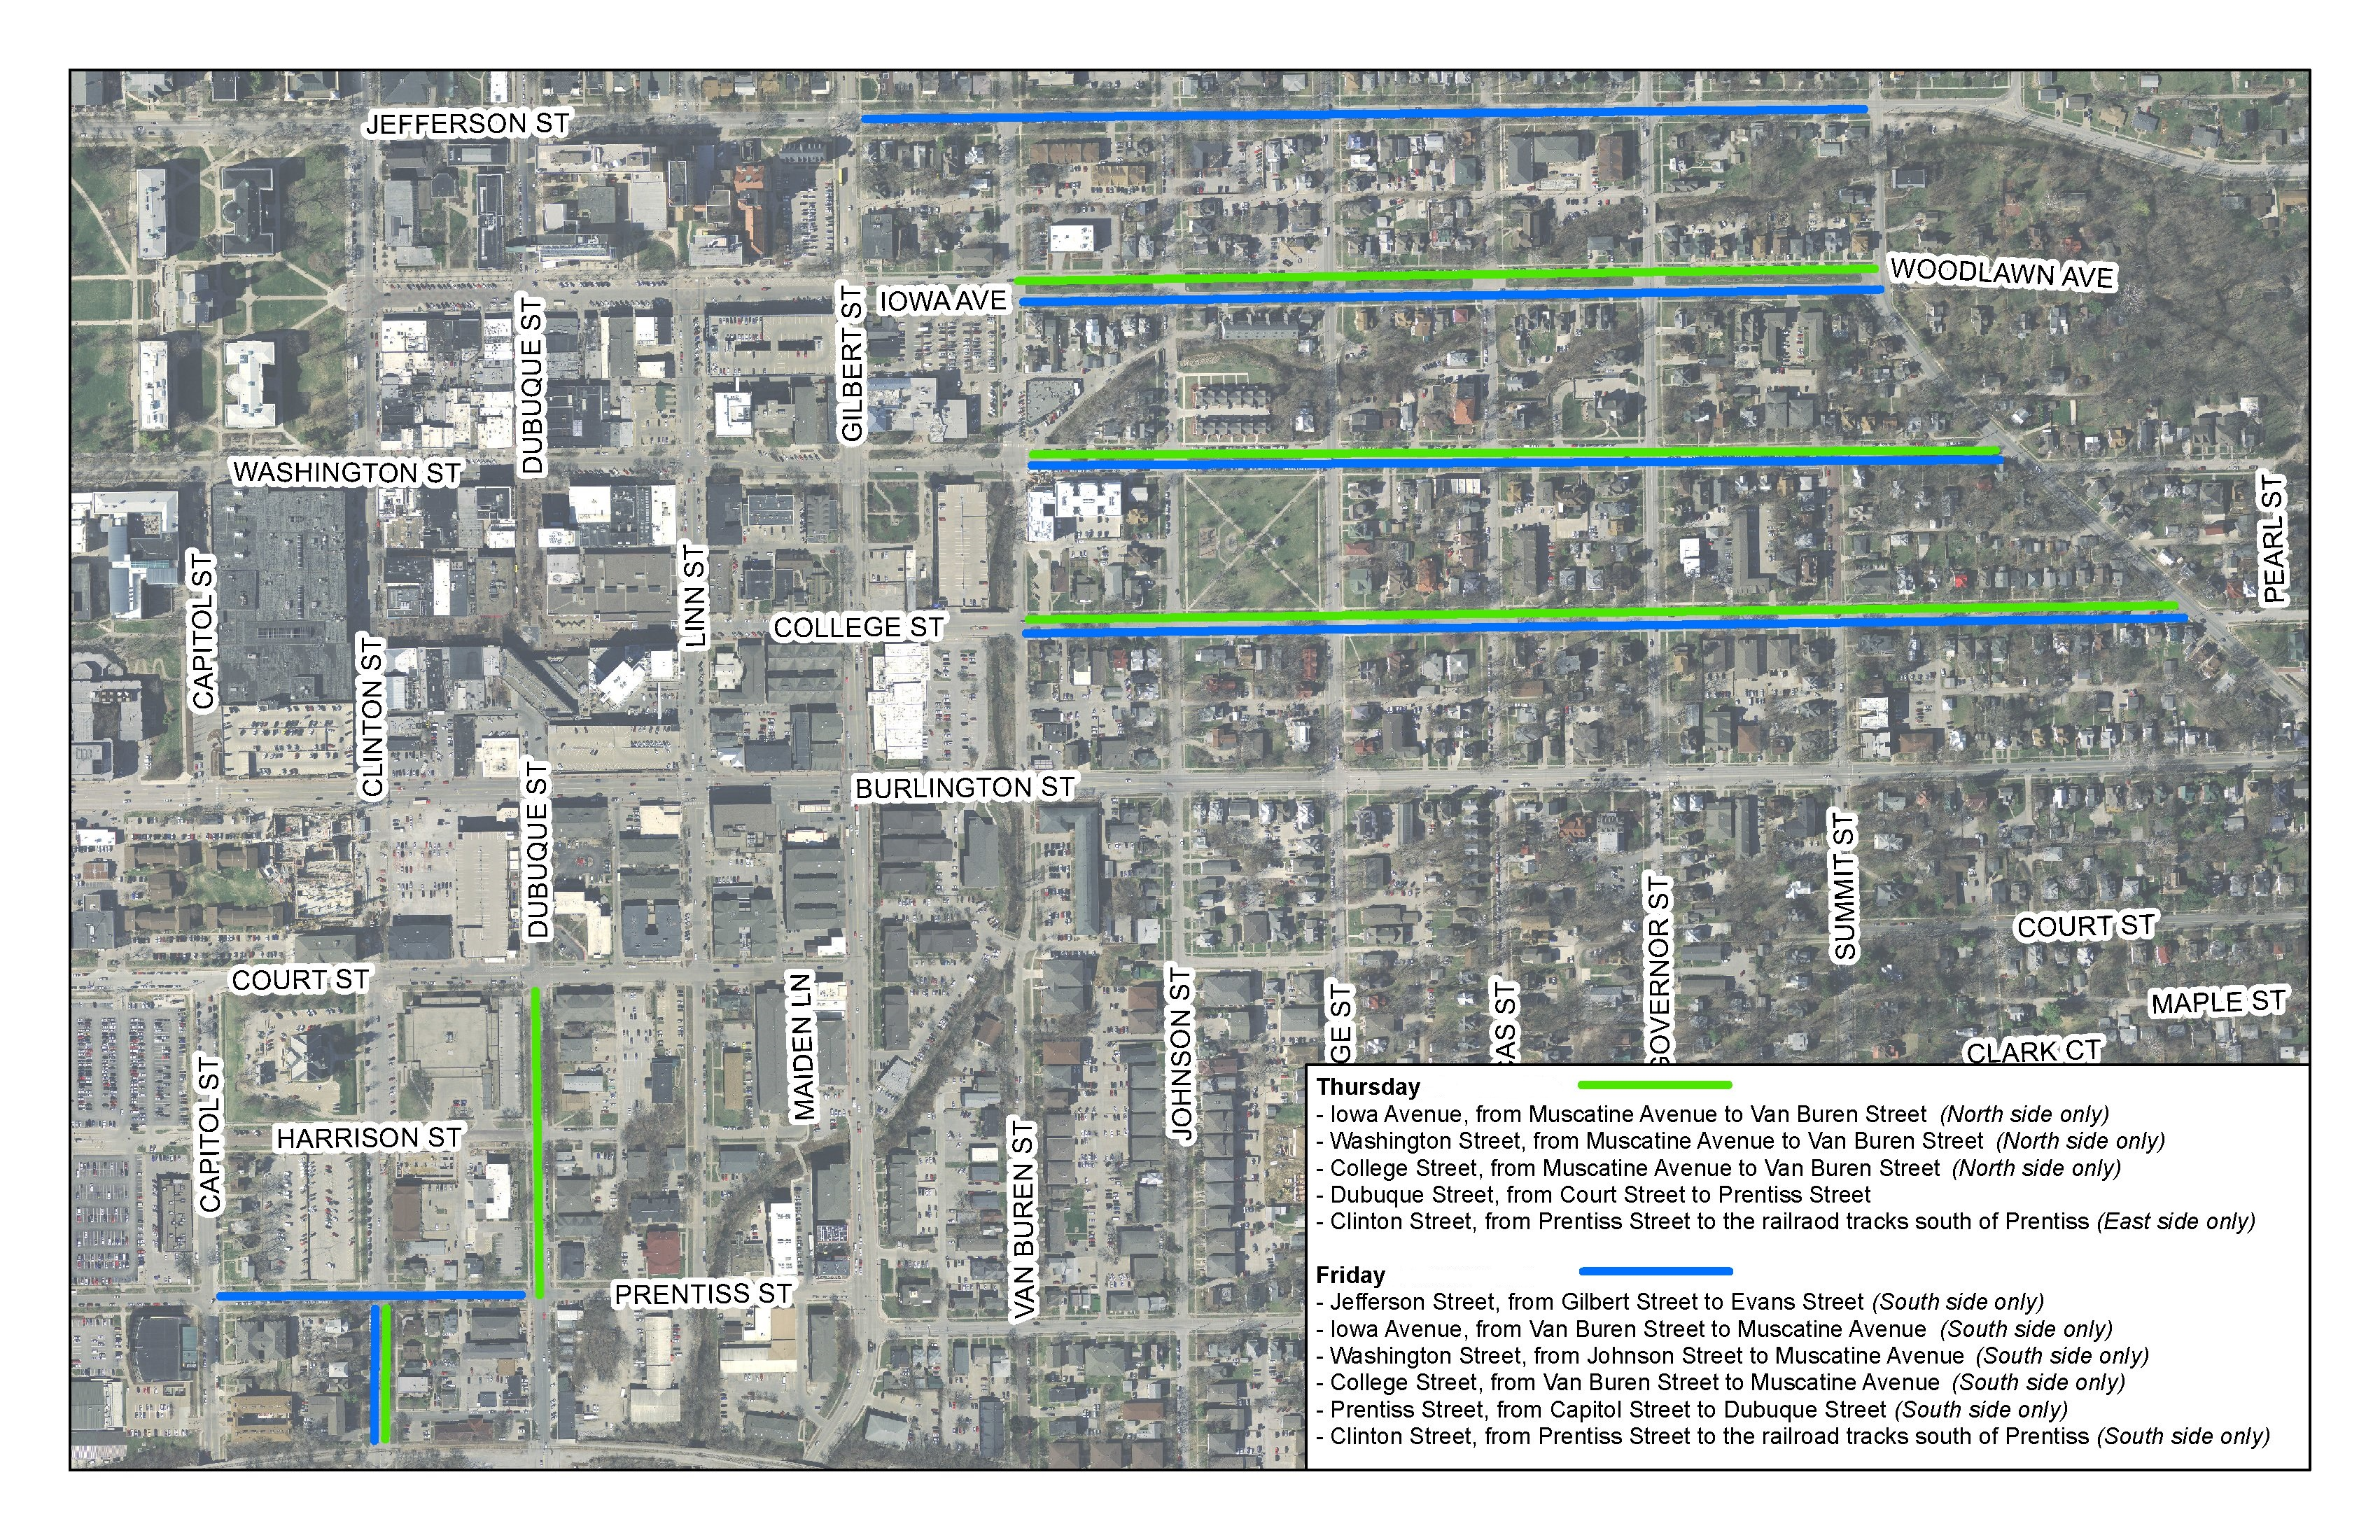 Map of streets that will be towed to clear snow on Feb. 25 and 26, 2021.